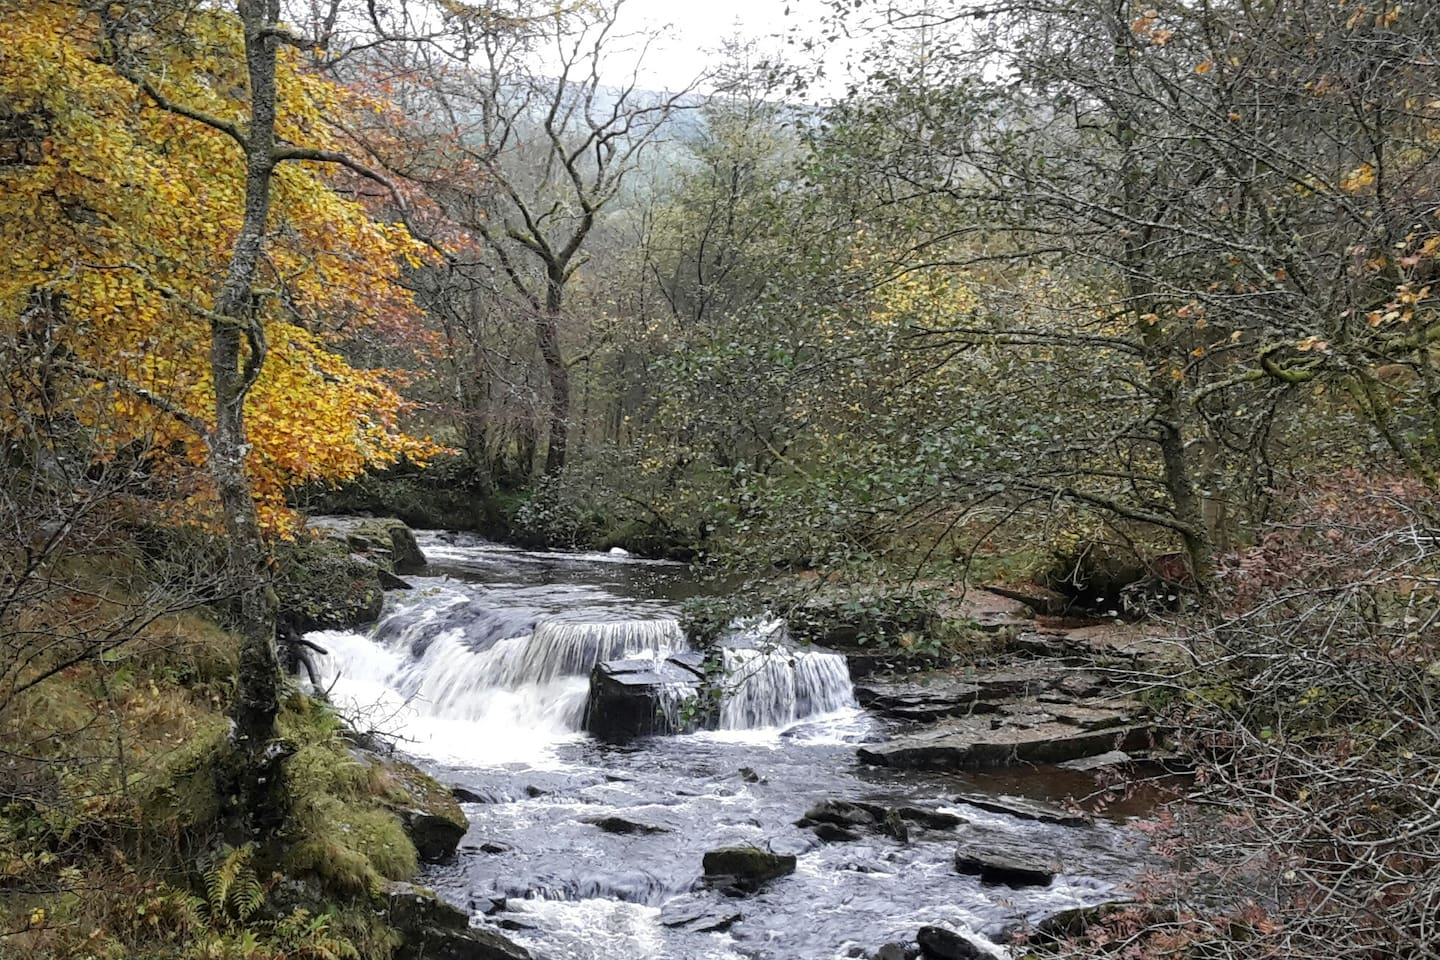 Close to the Brecon beacons national park